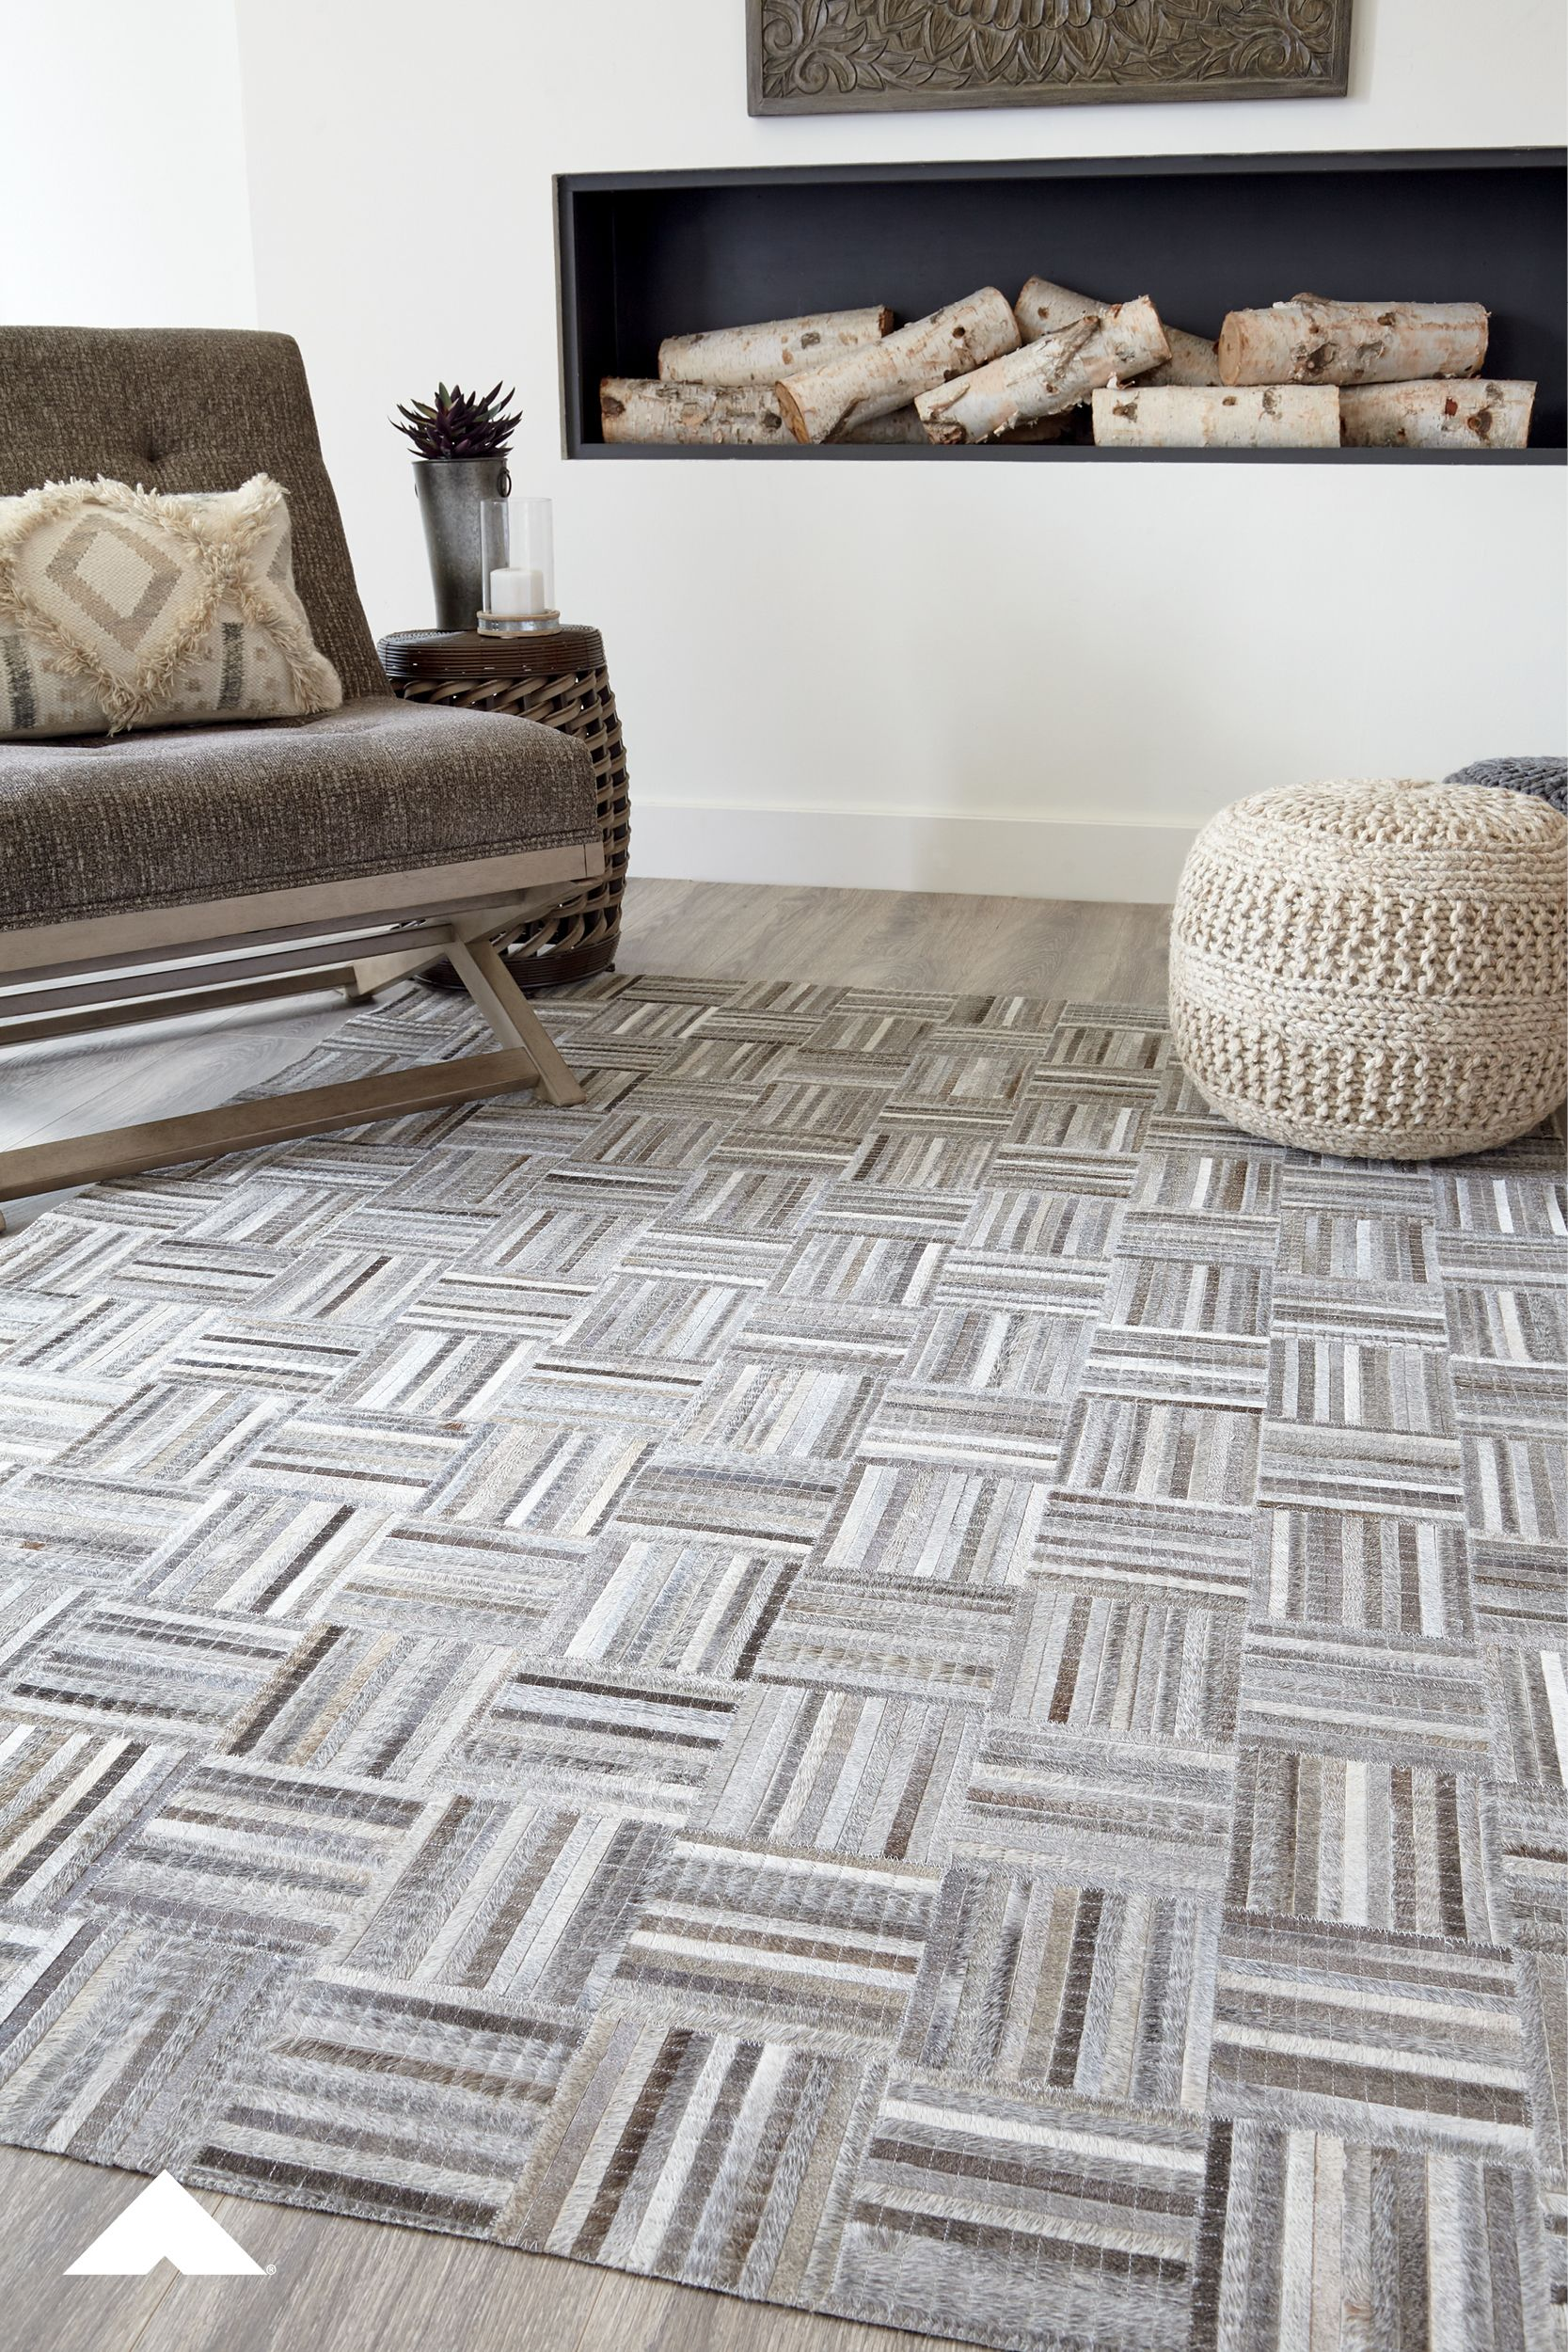 Gilham Gray Medium Accent Rug from Ashley Furniture Home